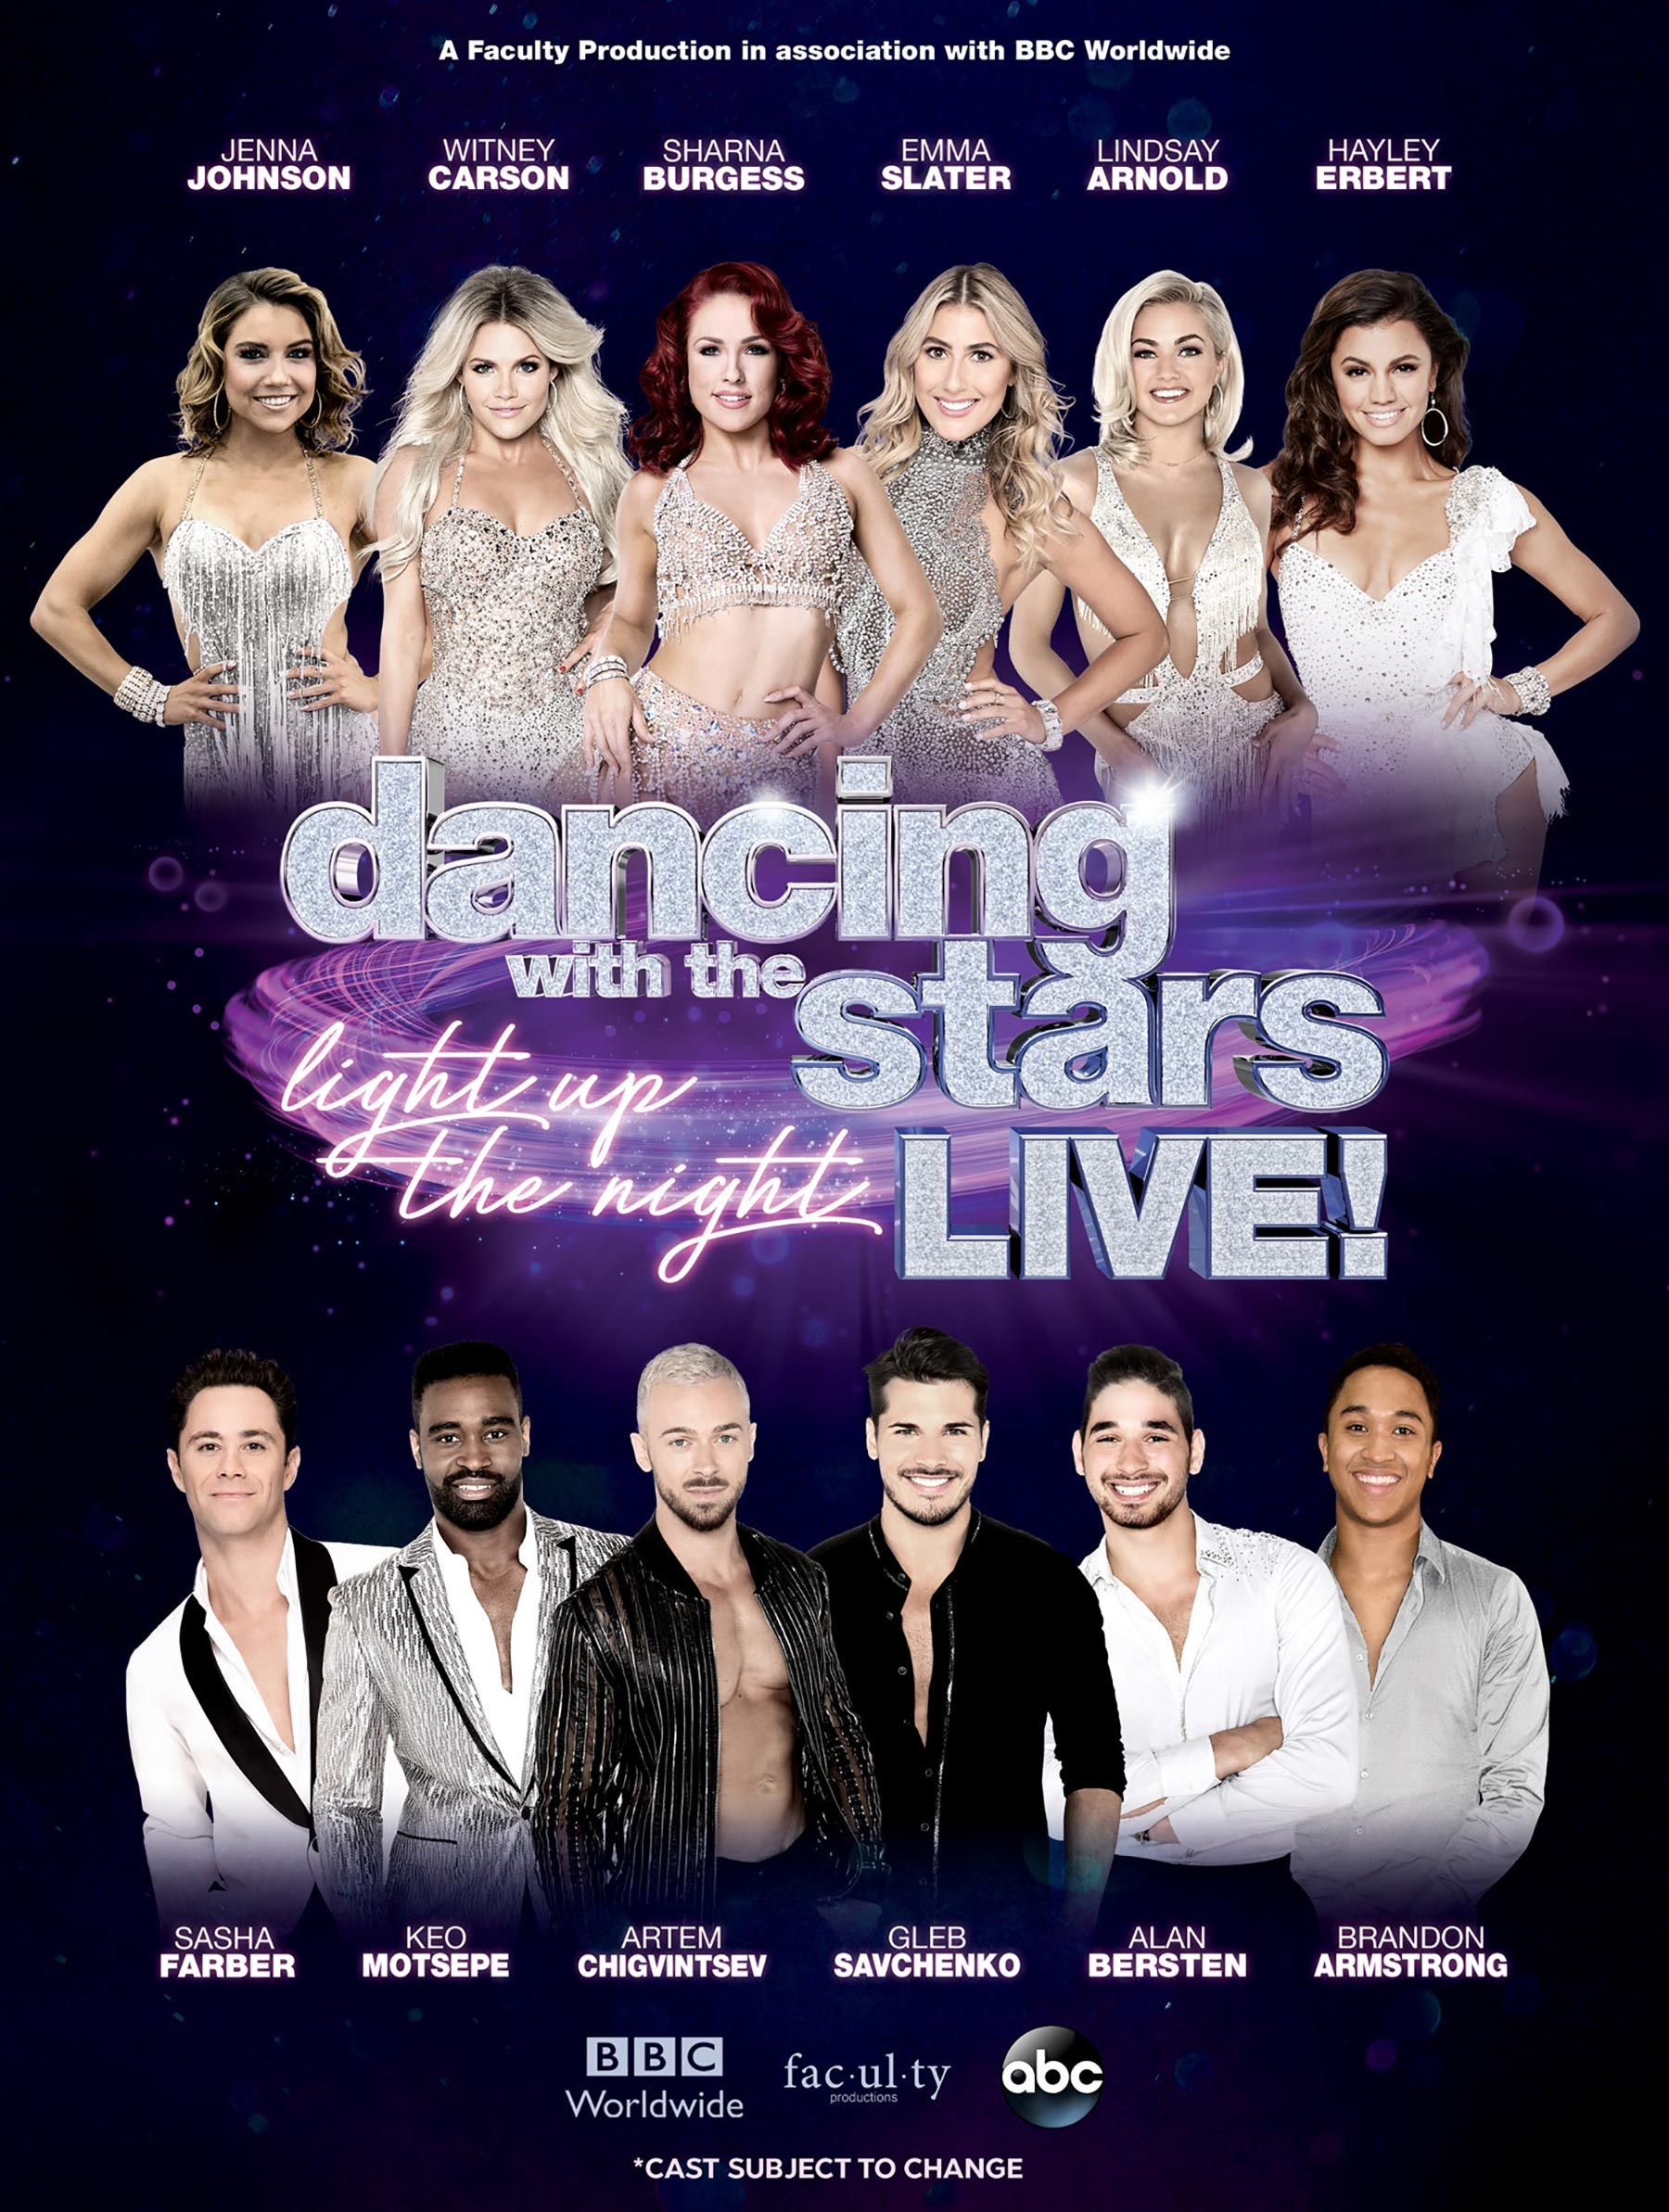 Dancing With the Stars Live tour bus involved in car accident